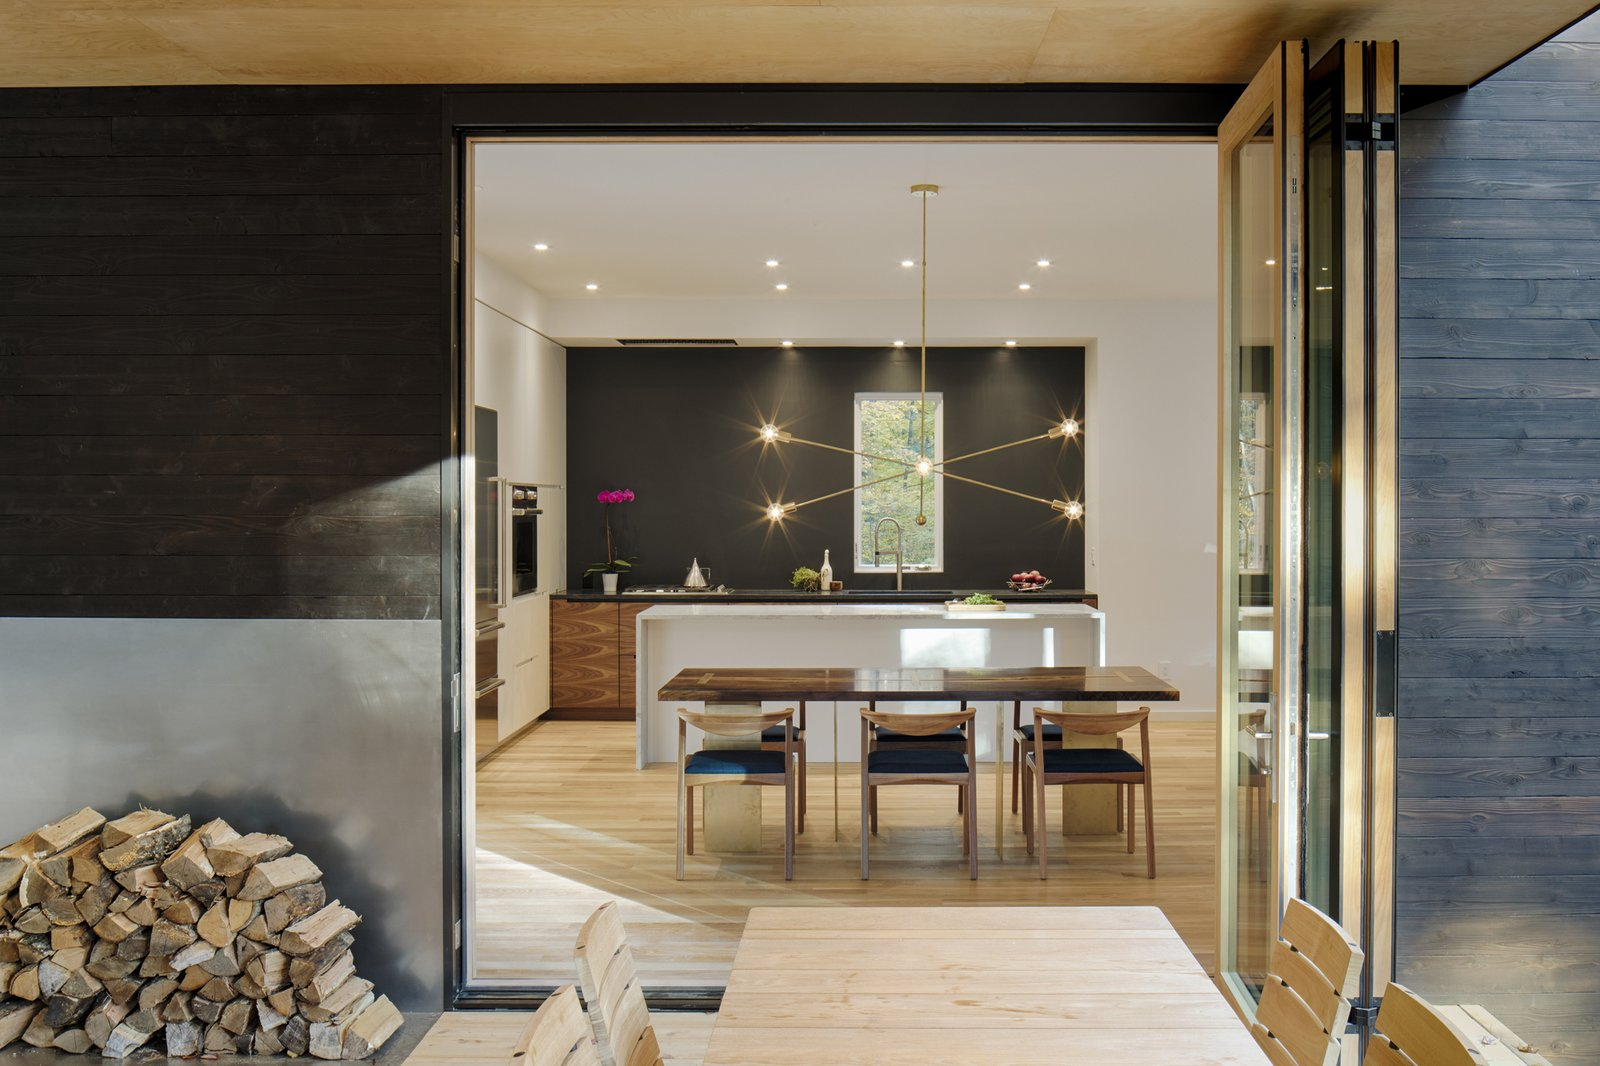 Dining Room, Table, Chair, Recessed Lighting, Accent Lighting, Light Hardwood Floor, and Storage  TinkerBox